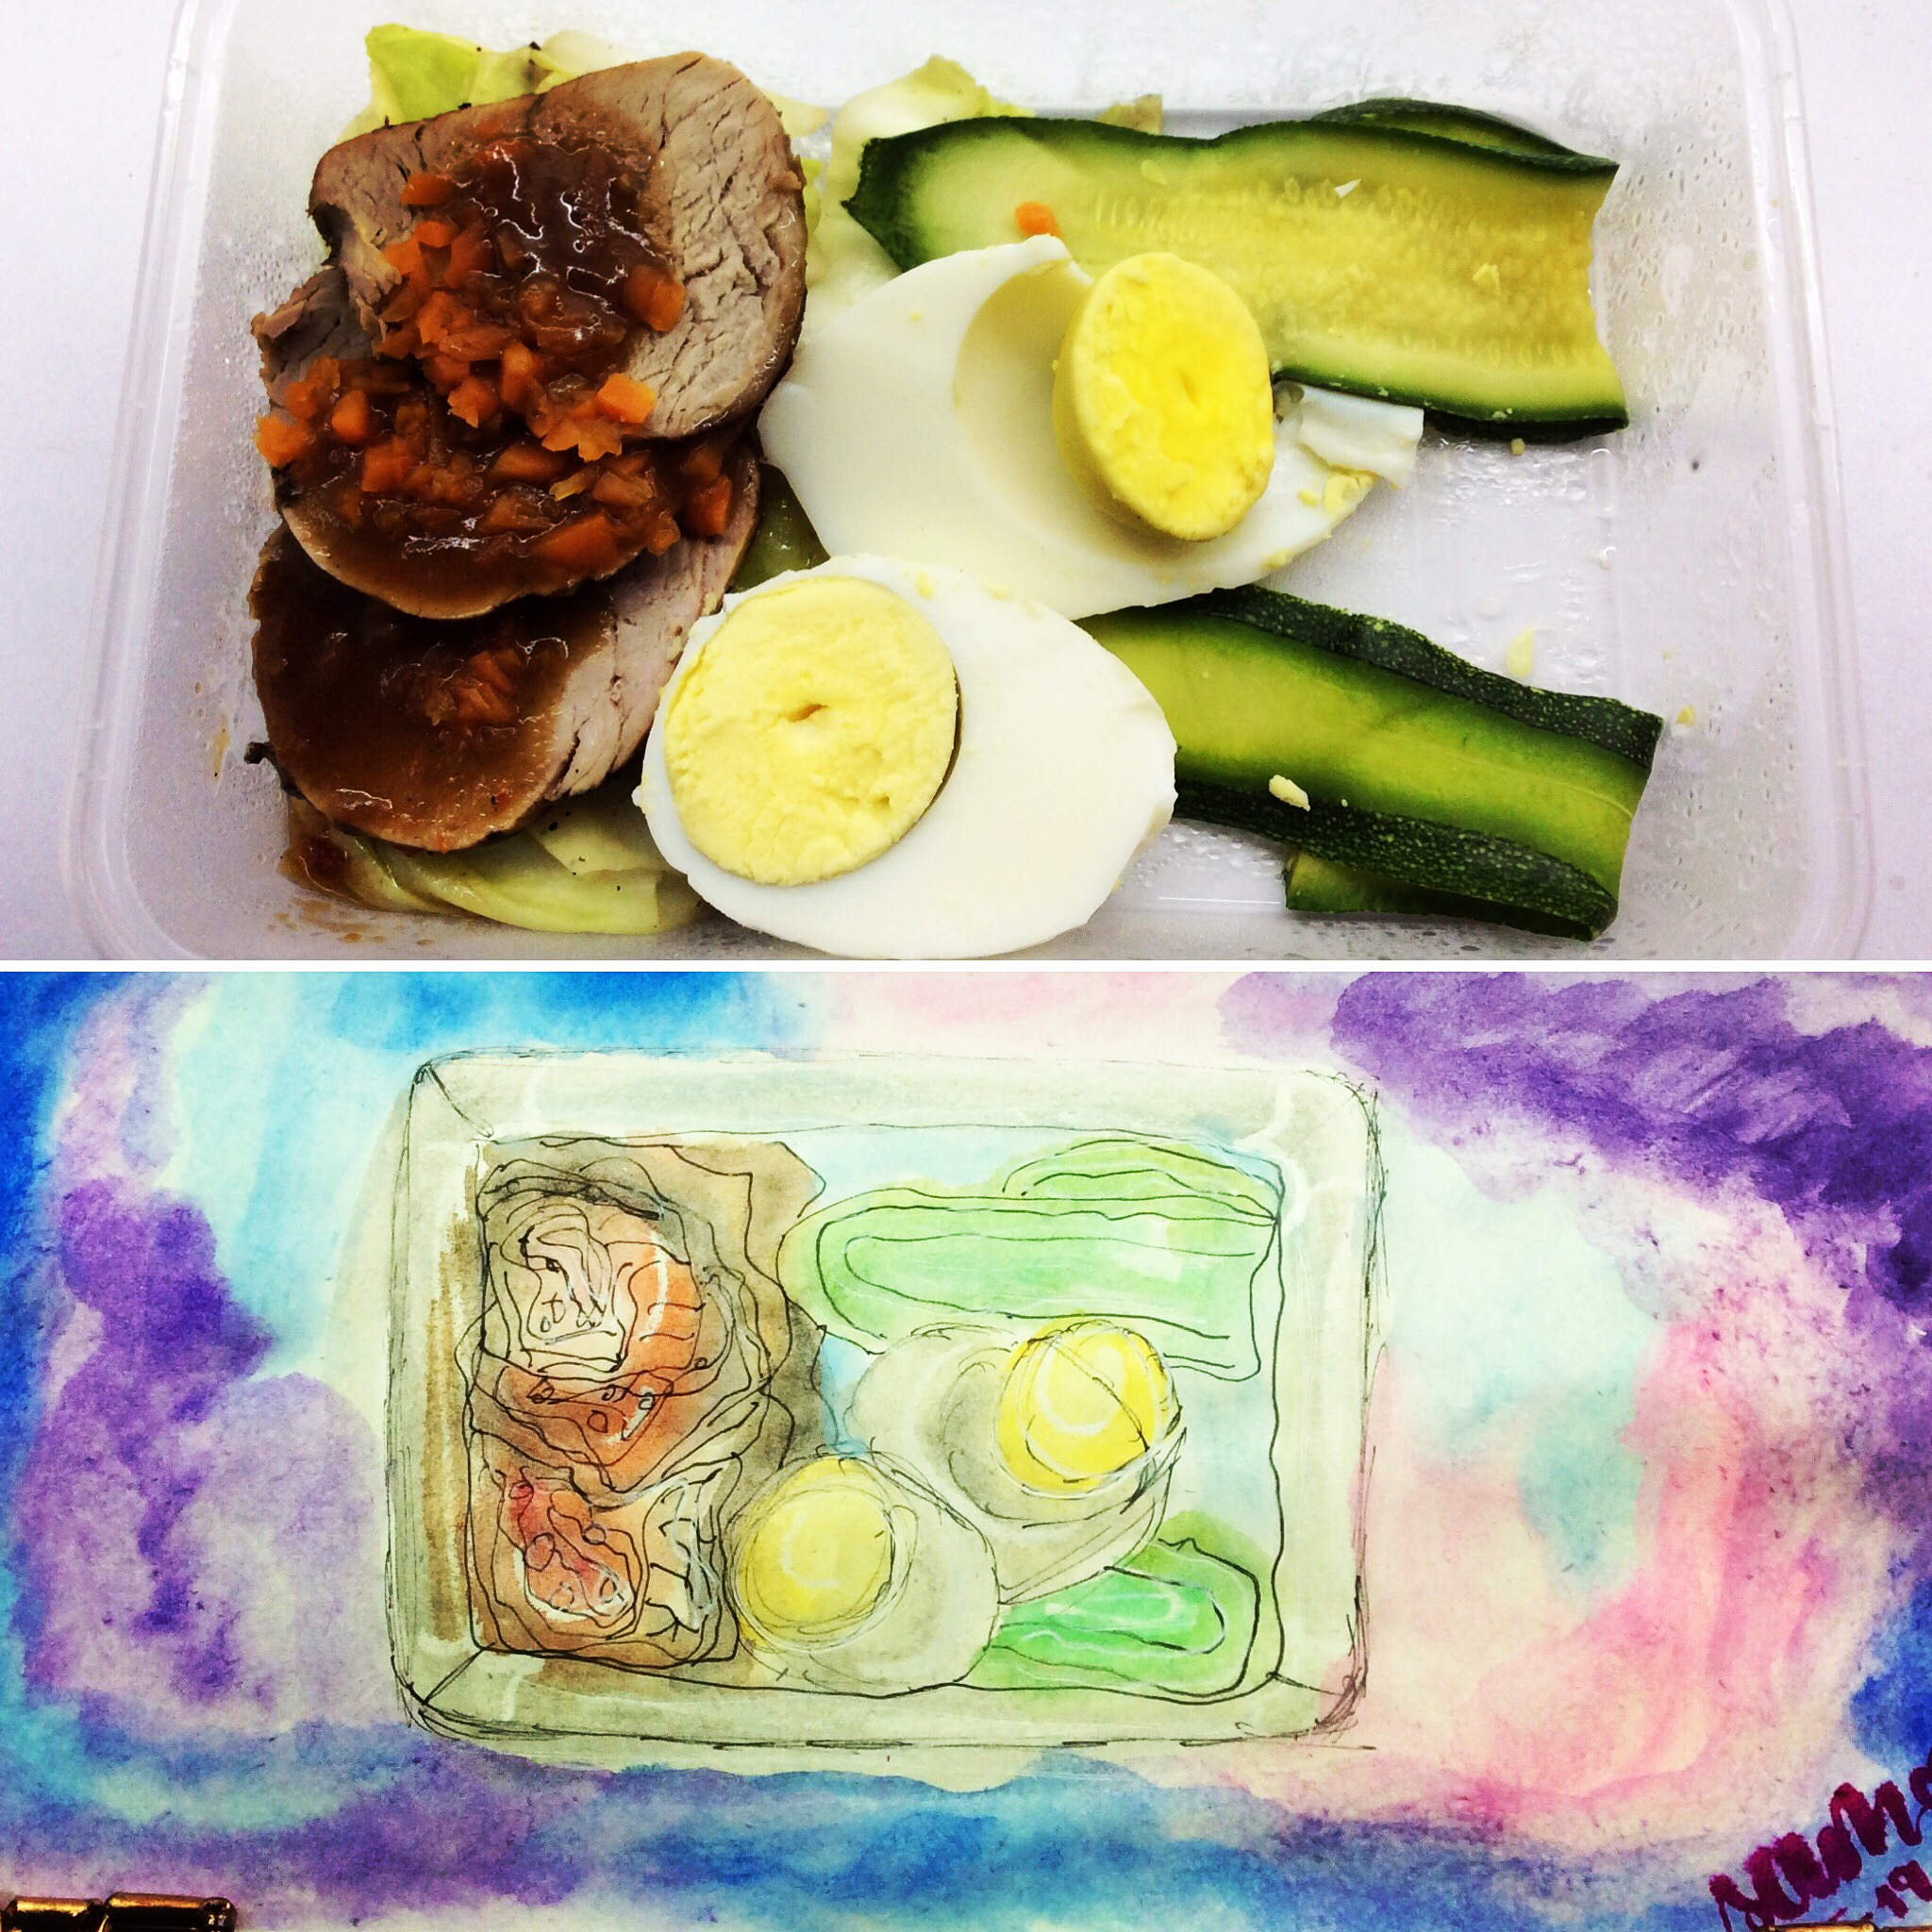 I painted my brekkie this morning as I savored each bite.